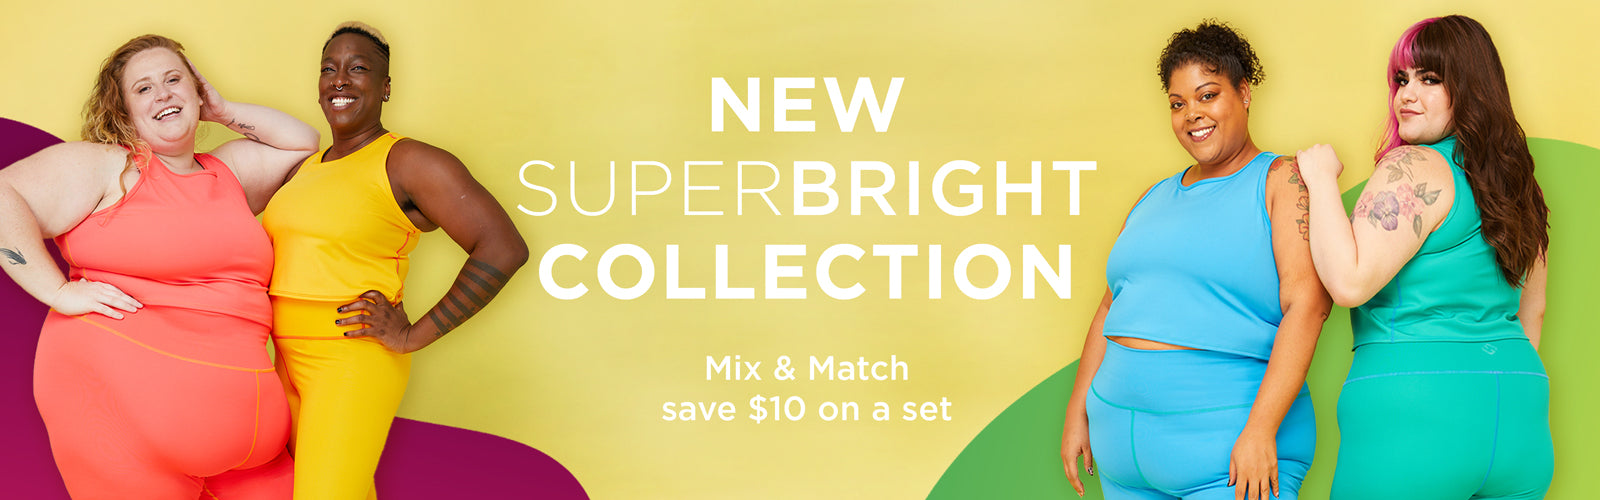 NEW SuperBright Collection, Mix & Match to save $10 on a set